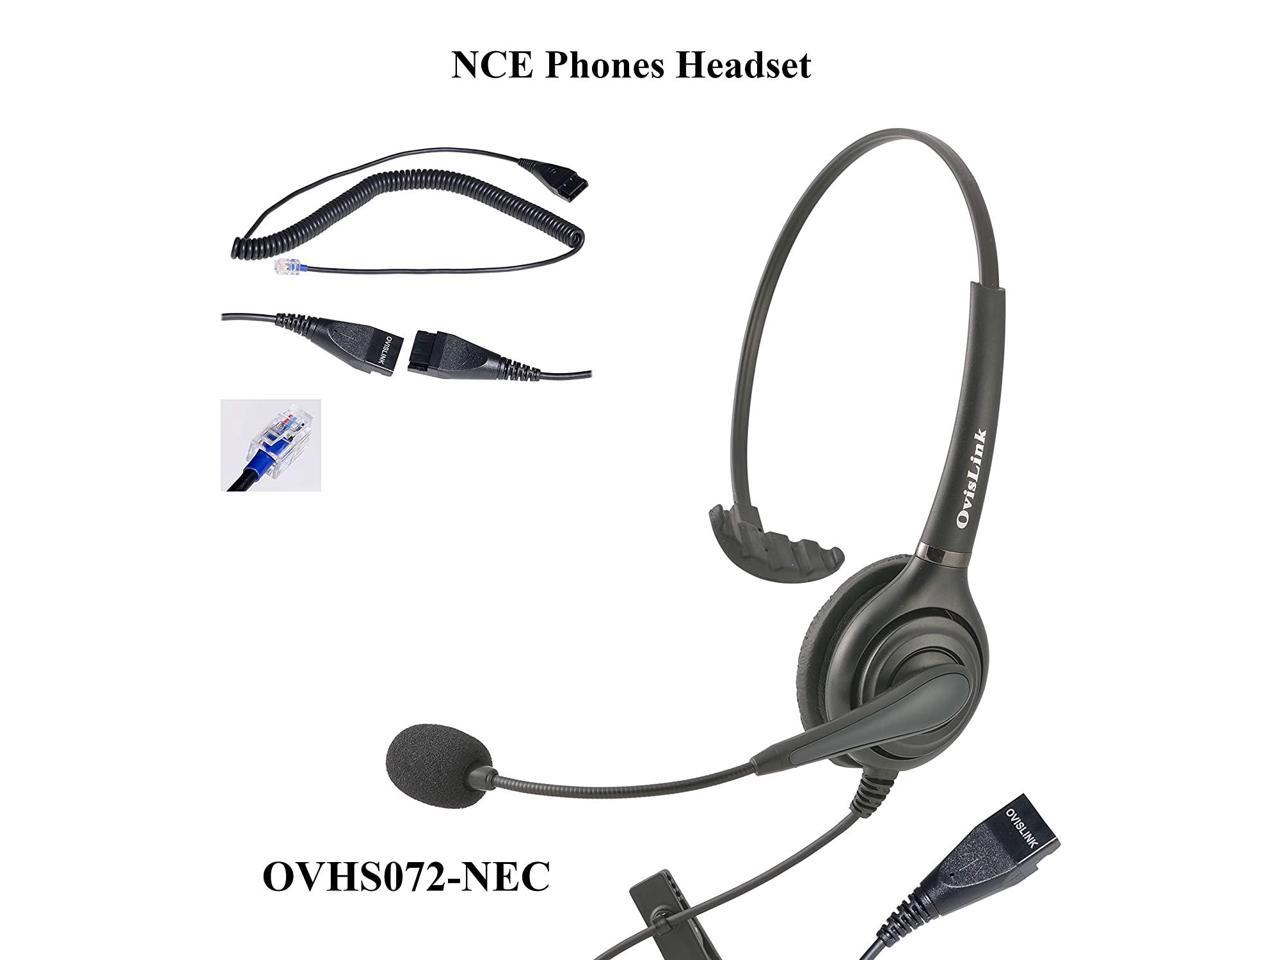 Special Color Edition Compatible with 3.5mm and 2.5mm Phones Jabra EarWave Corded Headset